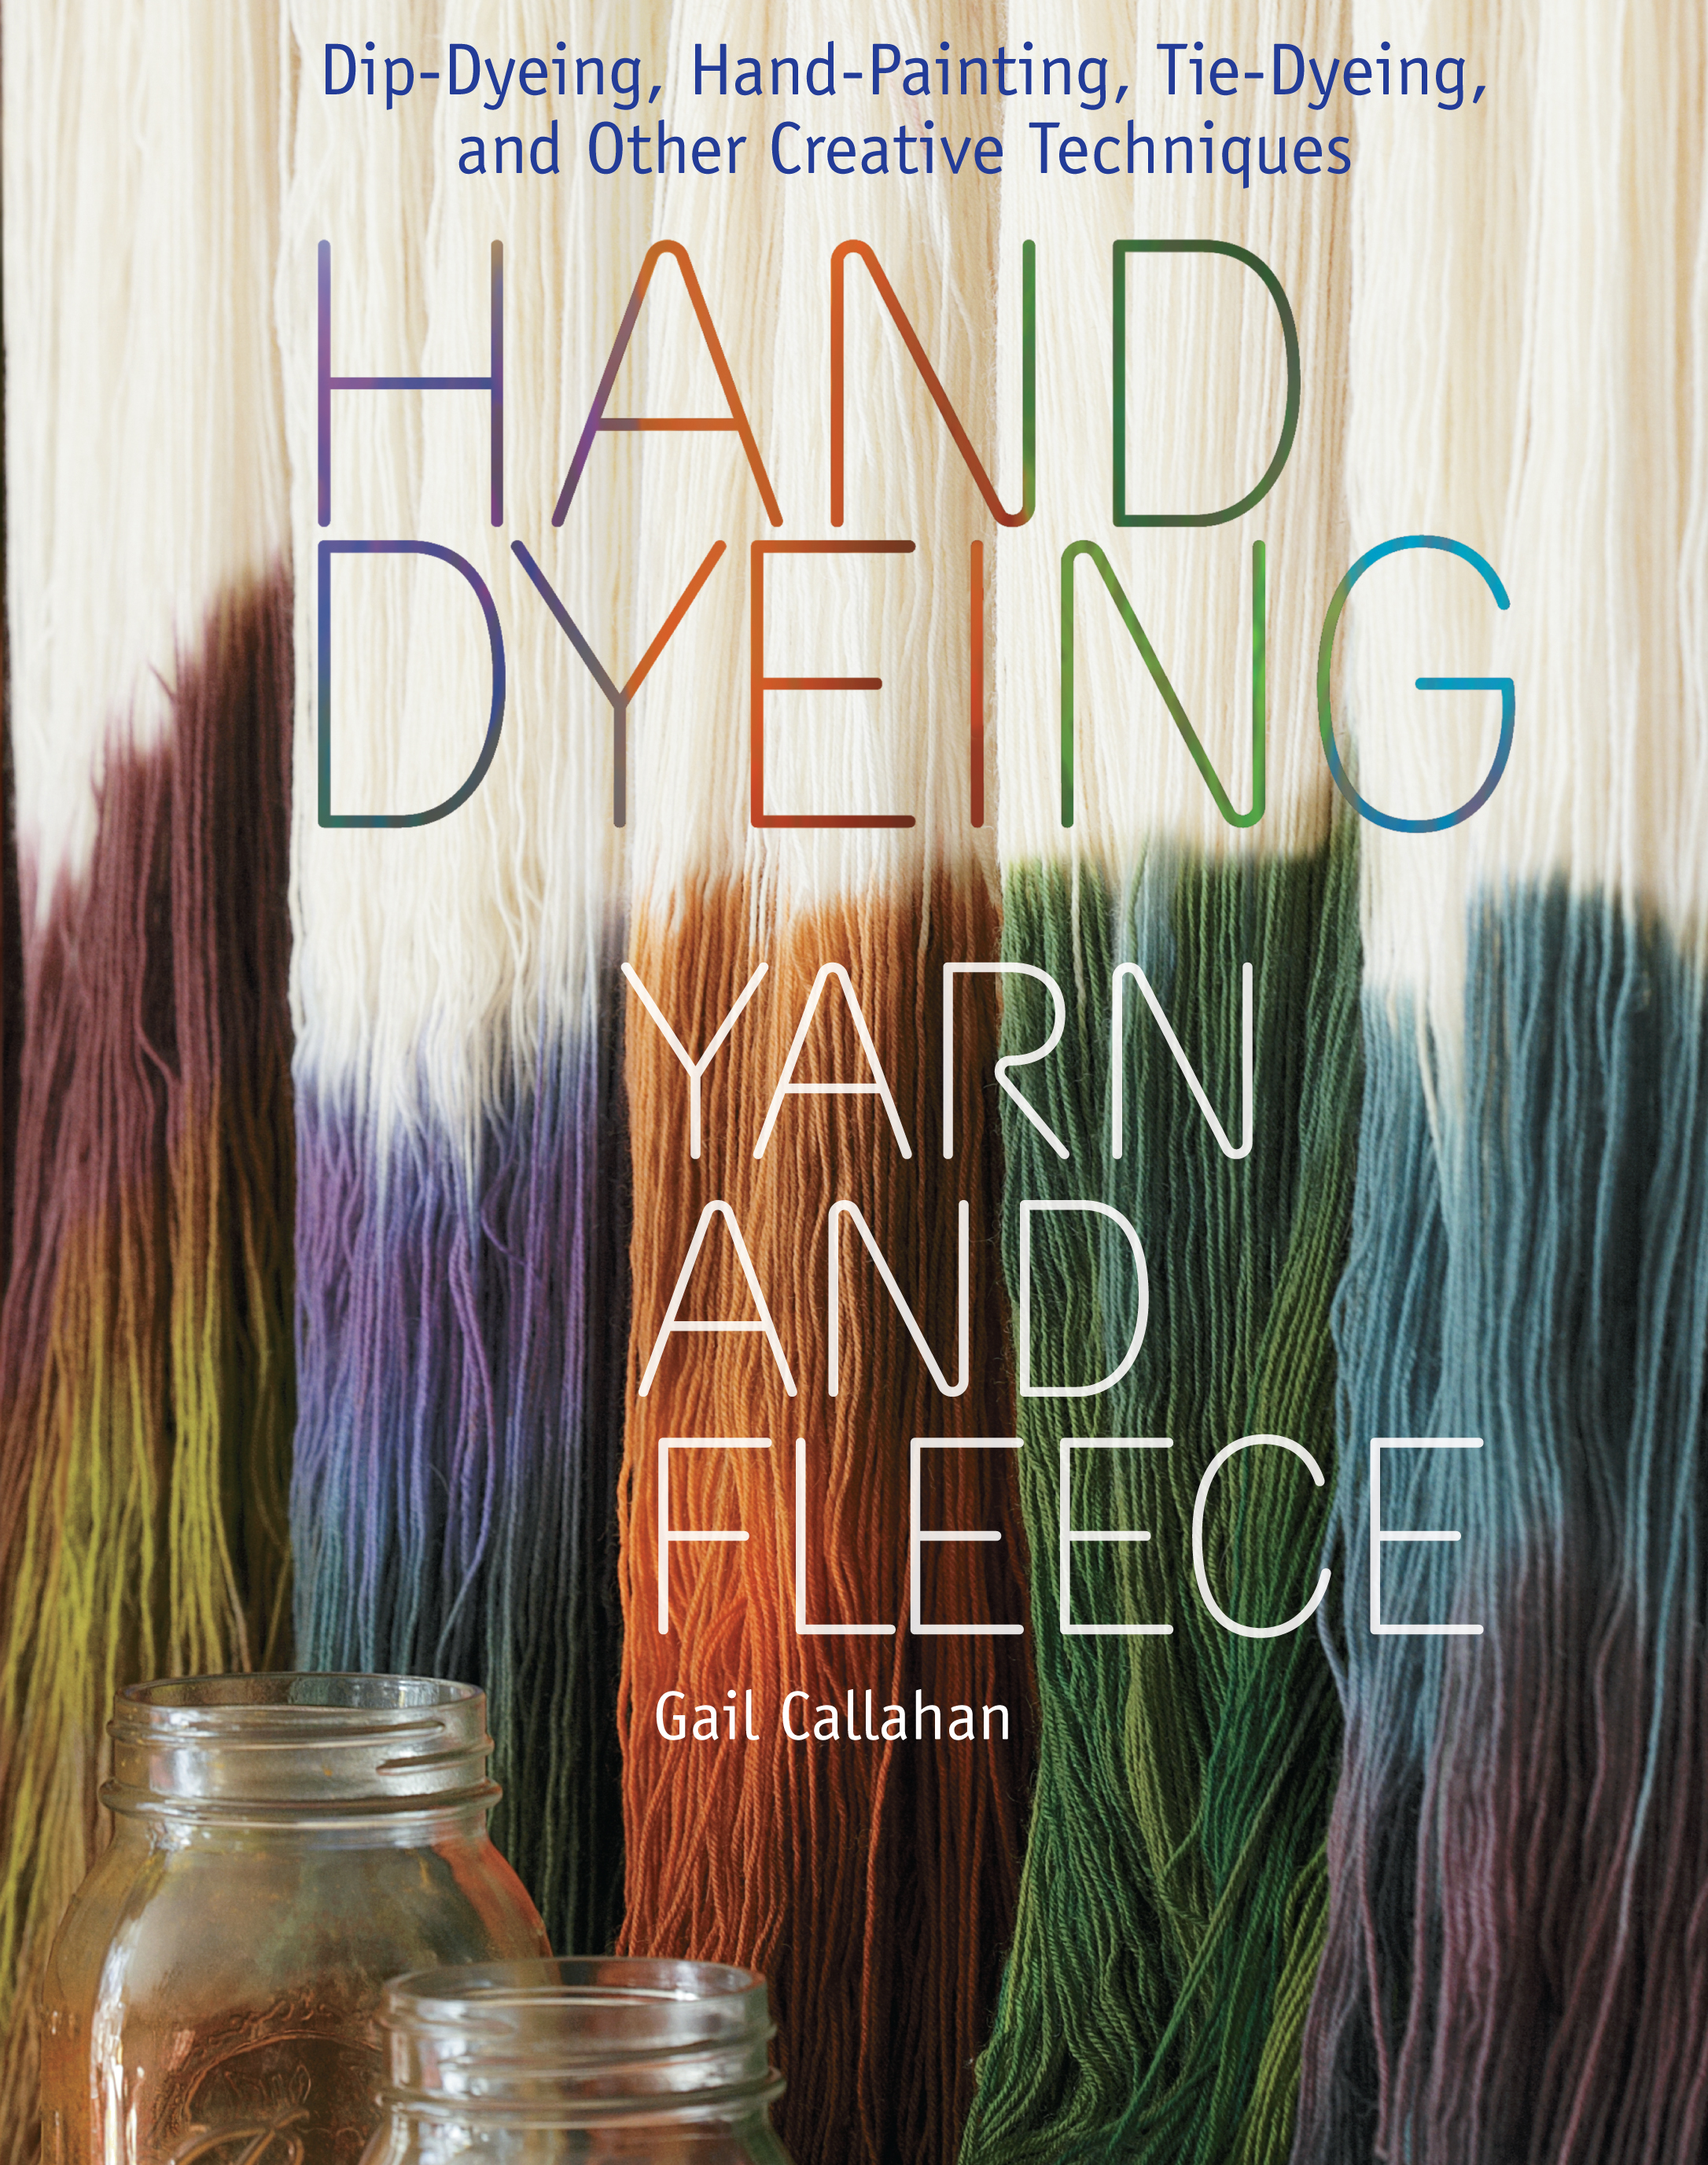 Hand Dyeing Yarn and Fleece Custom-Color Your Favorite Fibers with Dip-Dyeing, Hand-Painting, Tie-Dyeing, and Other Creative Techniques - Gail Callahan